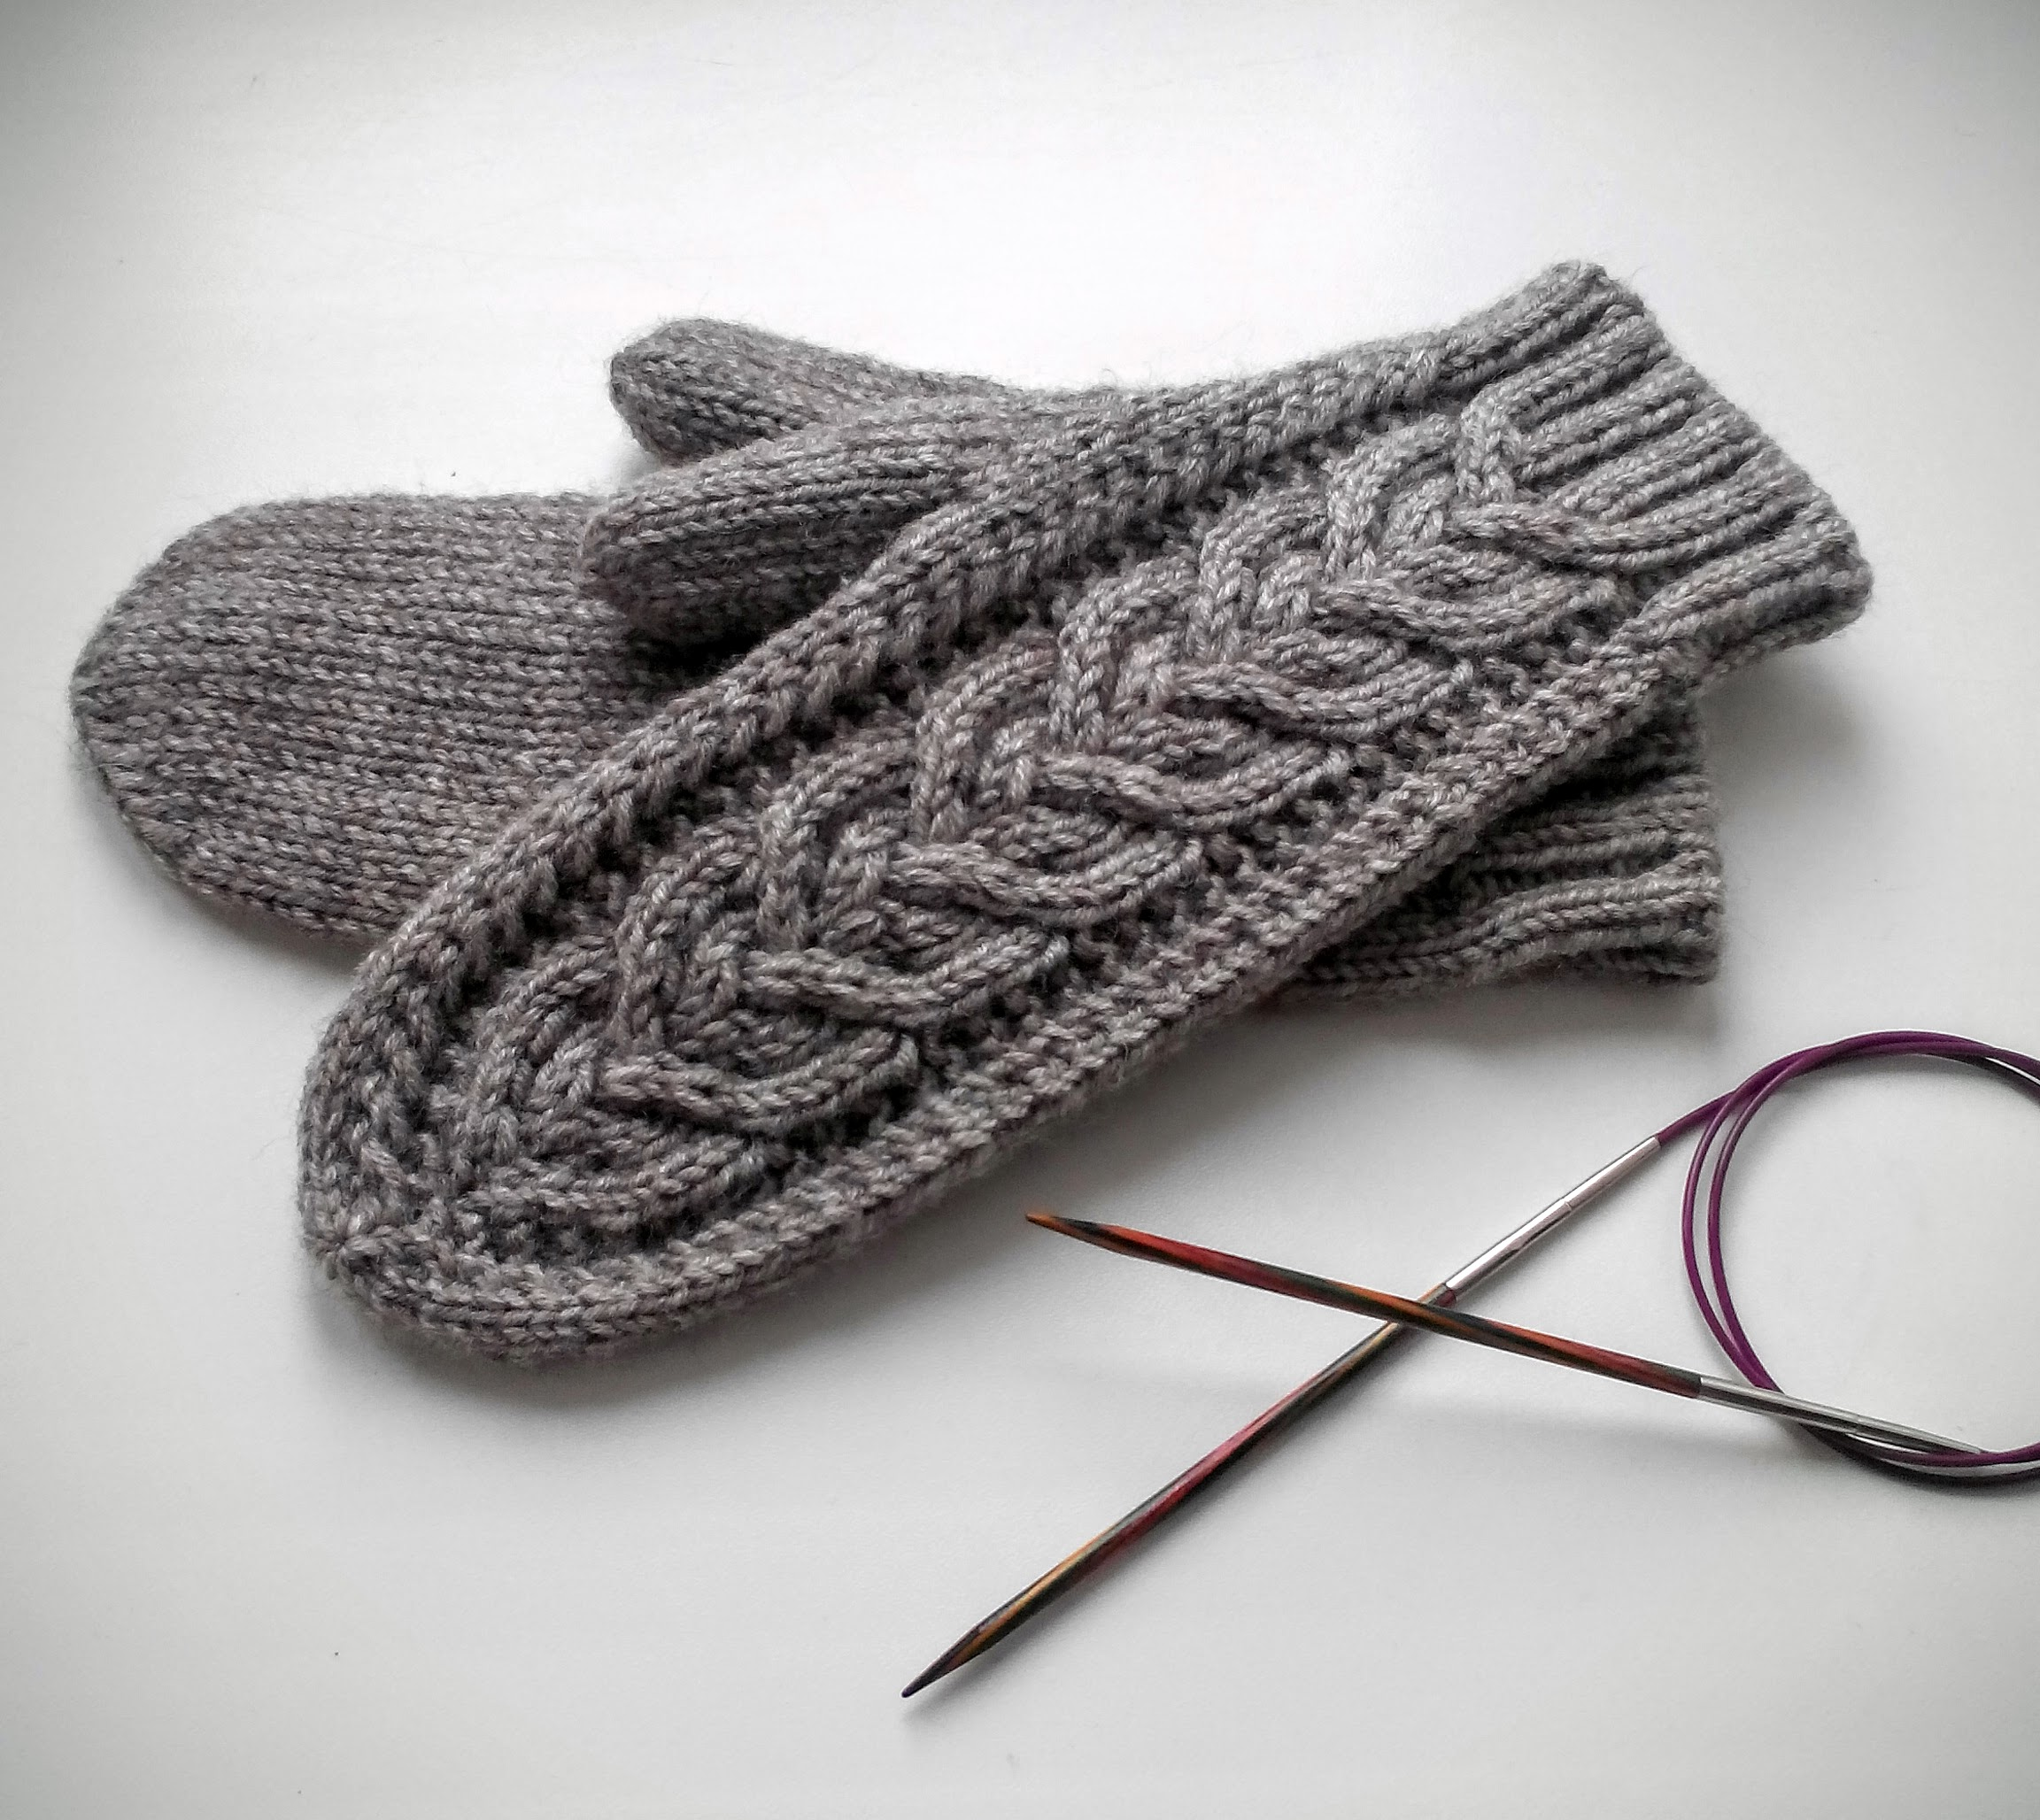 2 mittens on circular needles